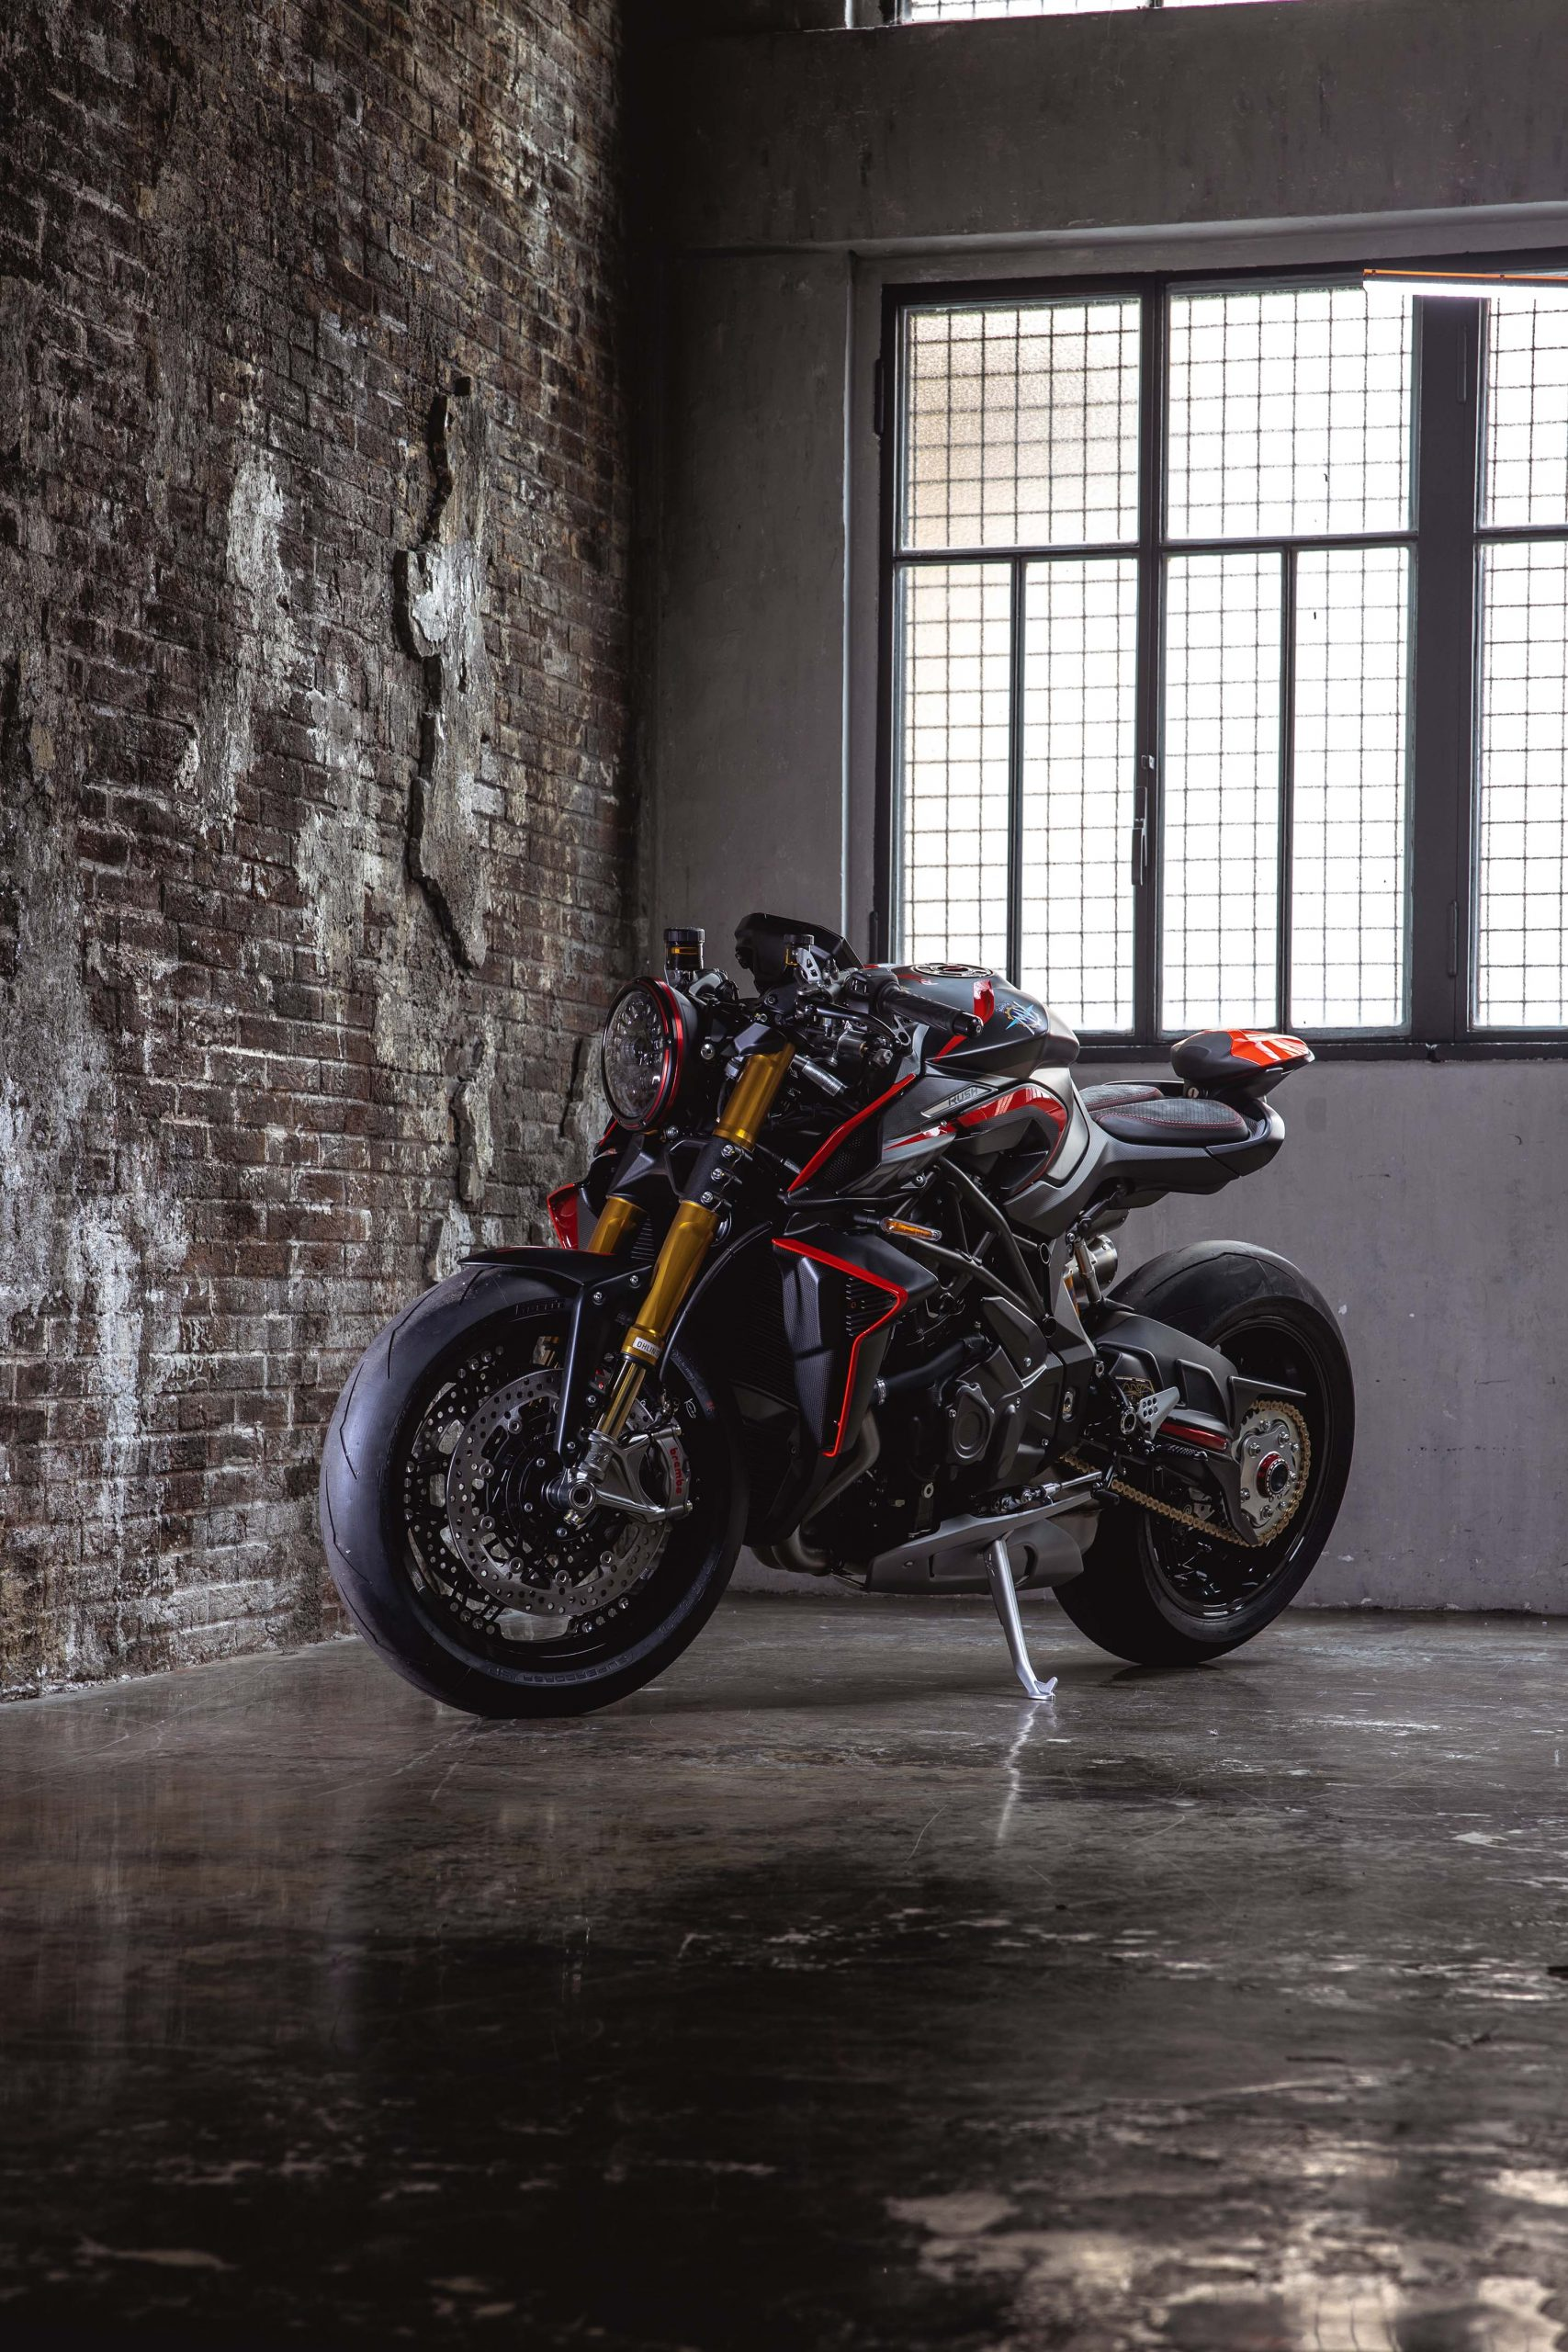 The New MV Agusta Rush 1000 Goes Into Production in June